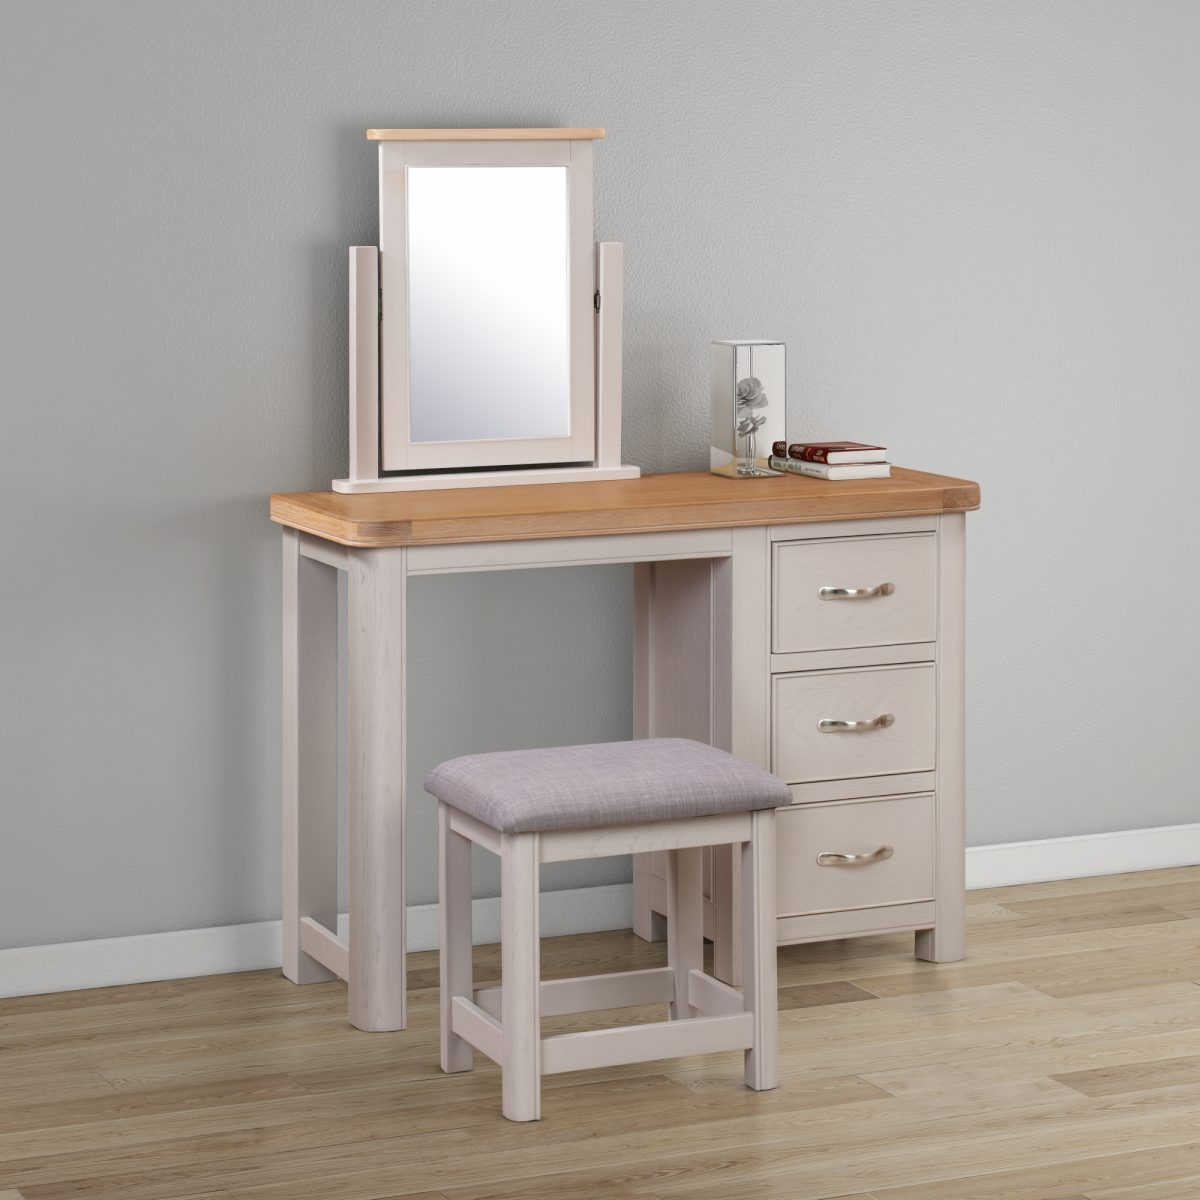 84 24 Chatsworth Painted Dressing Table Set feature